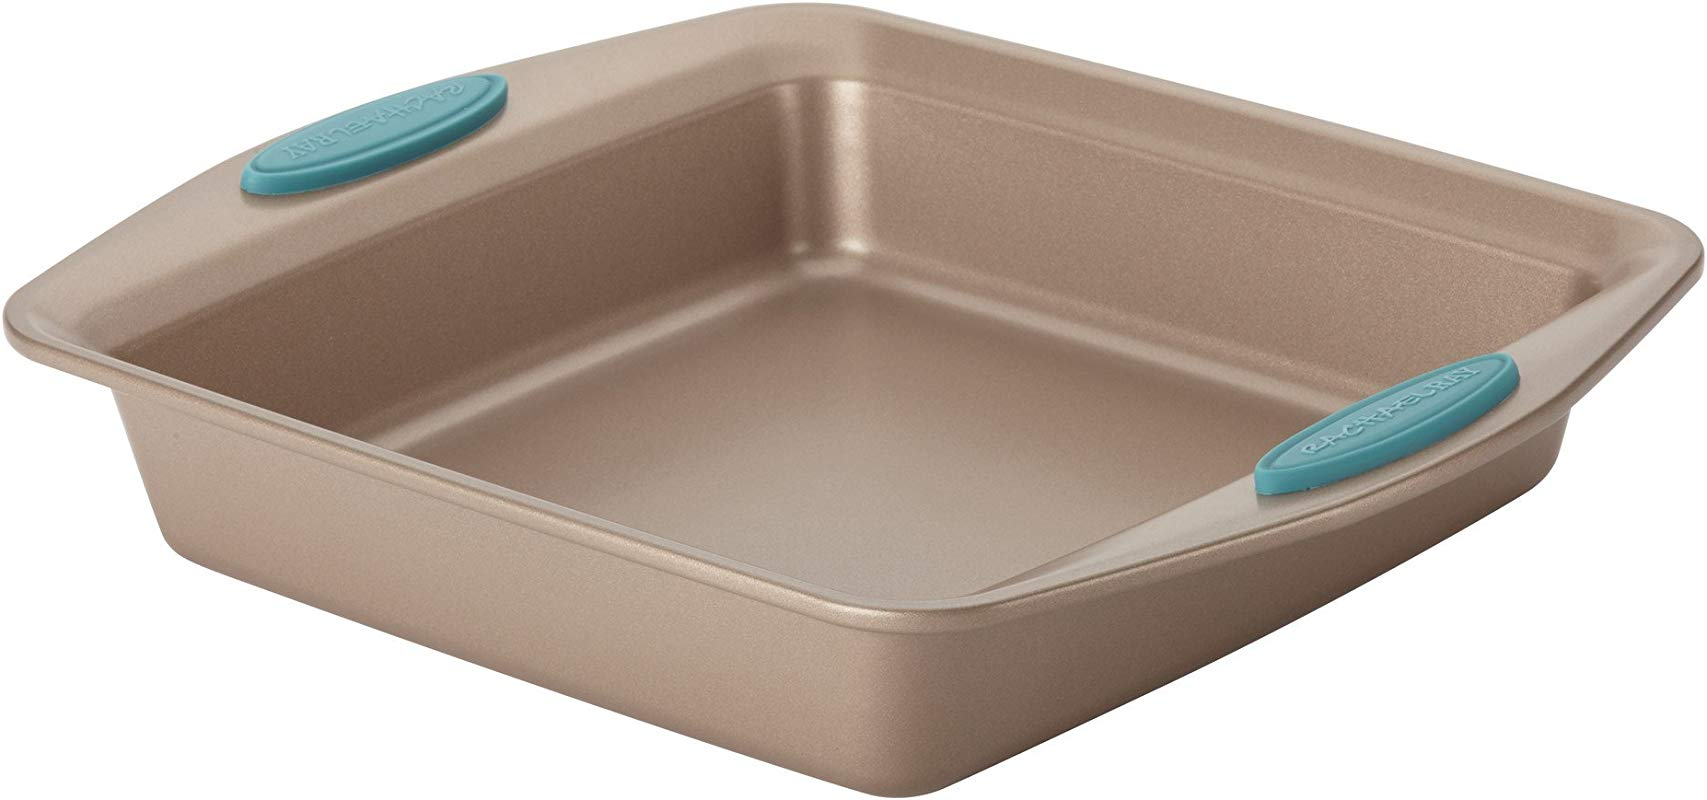 Rachael Ray Cucina Nonstick Bakeware Square Cake Pan 9 Inch Latte Brown With Agave Blue Handles